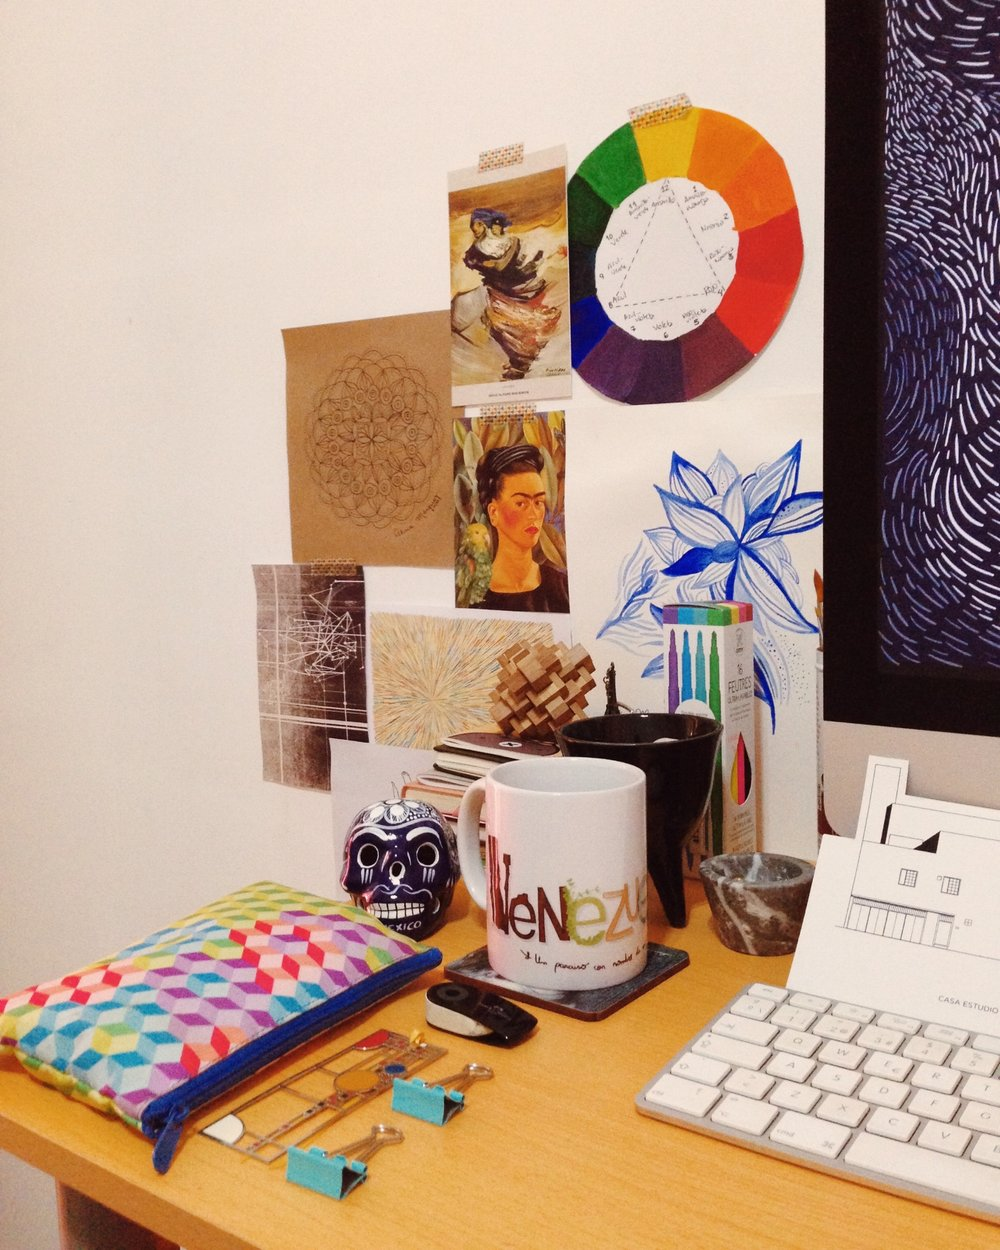 My crowded desktop: packed with sketches, postcards, souvenirs, art supplies and inspiration.